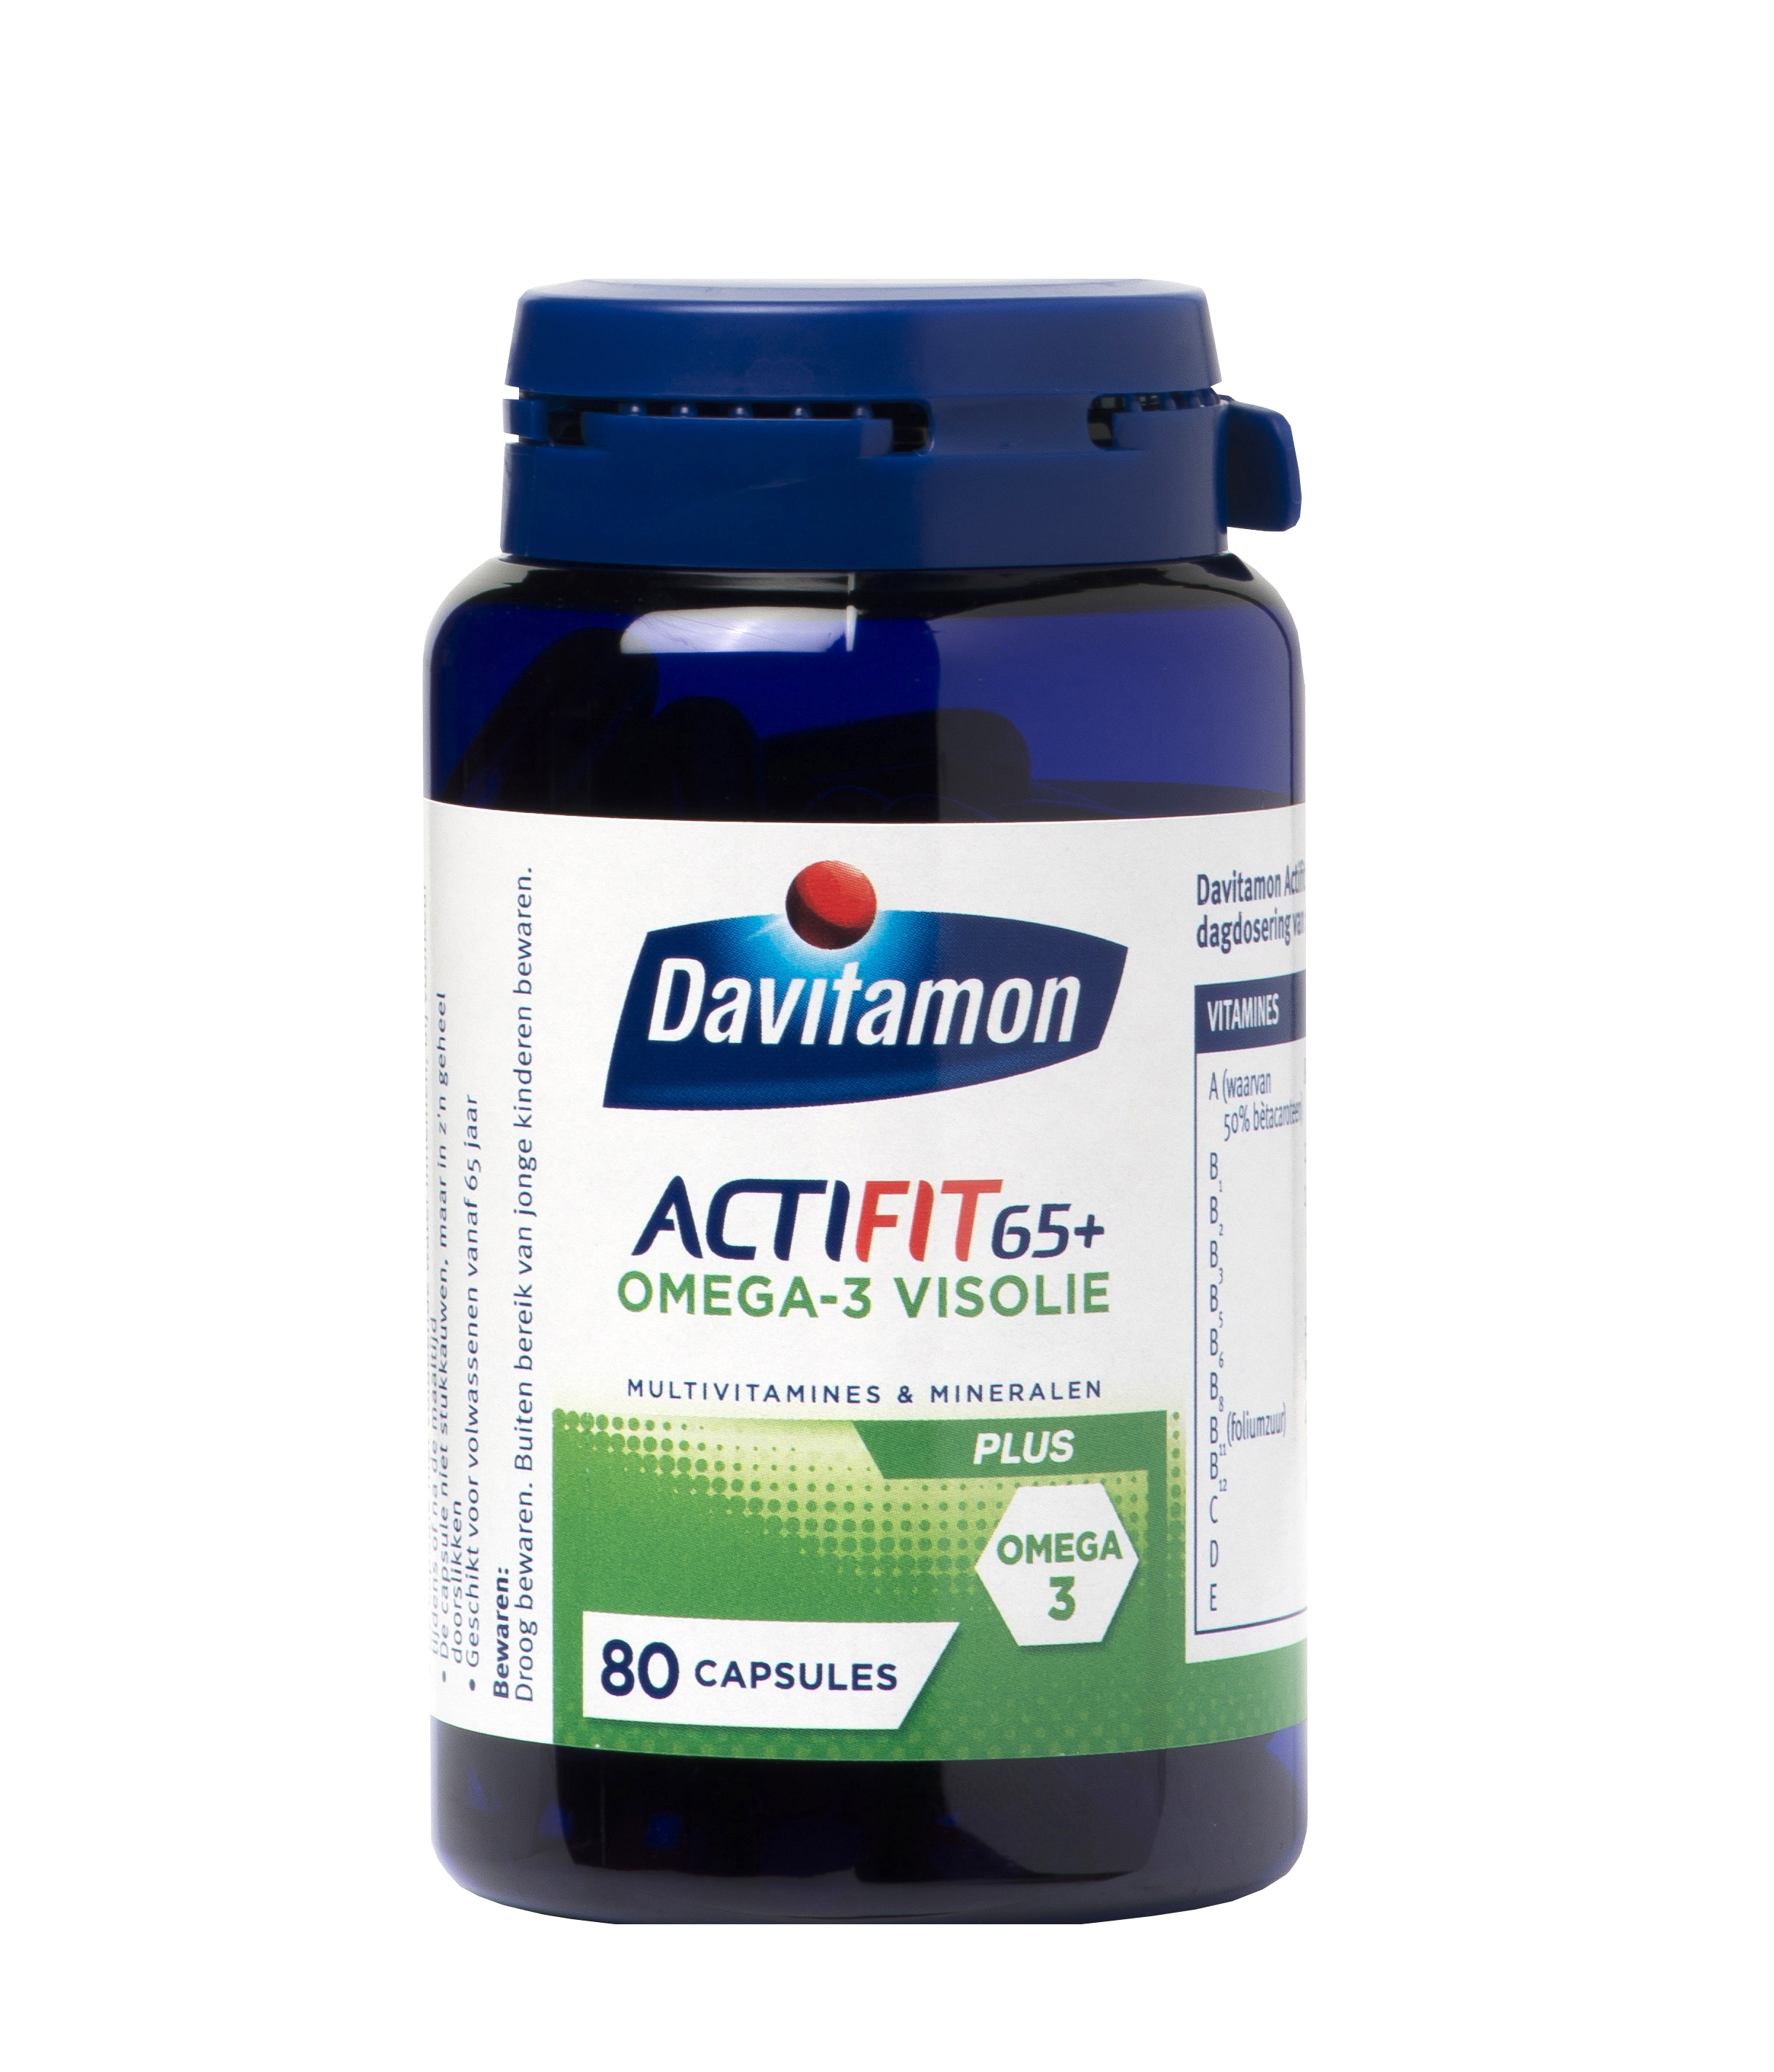 Davitamon Actifit 65+ Visolie Tabletten Product